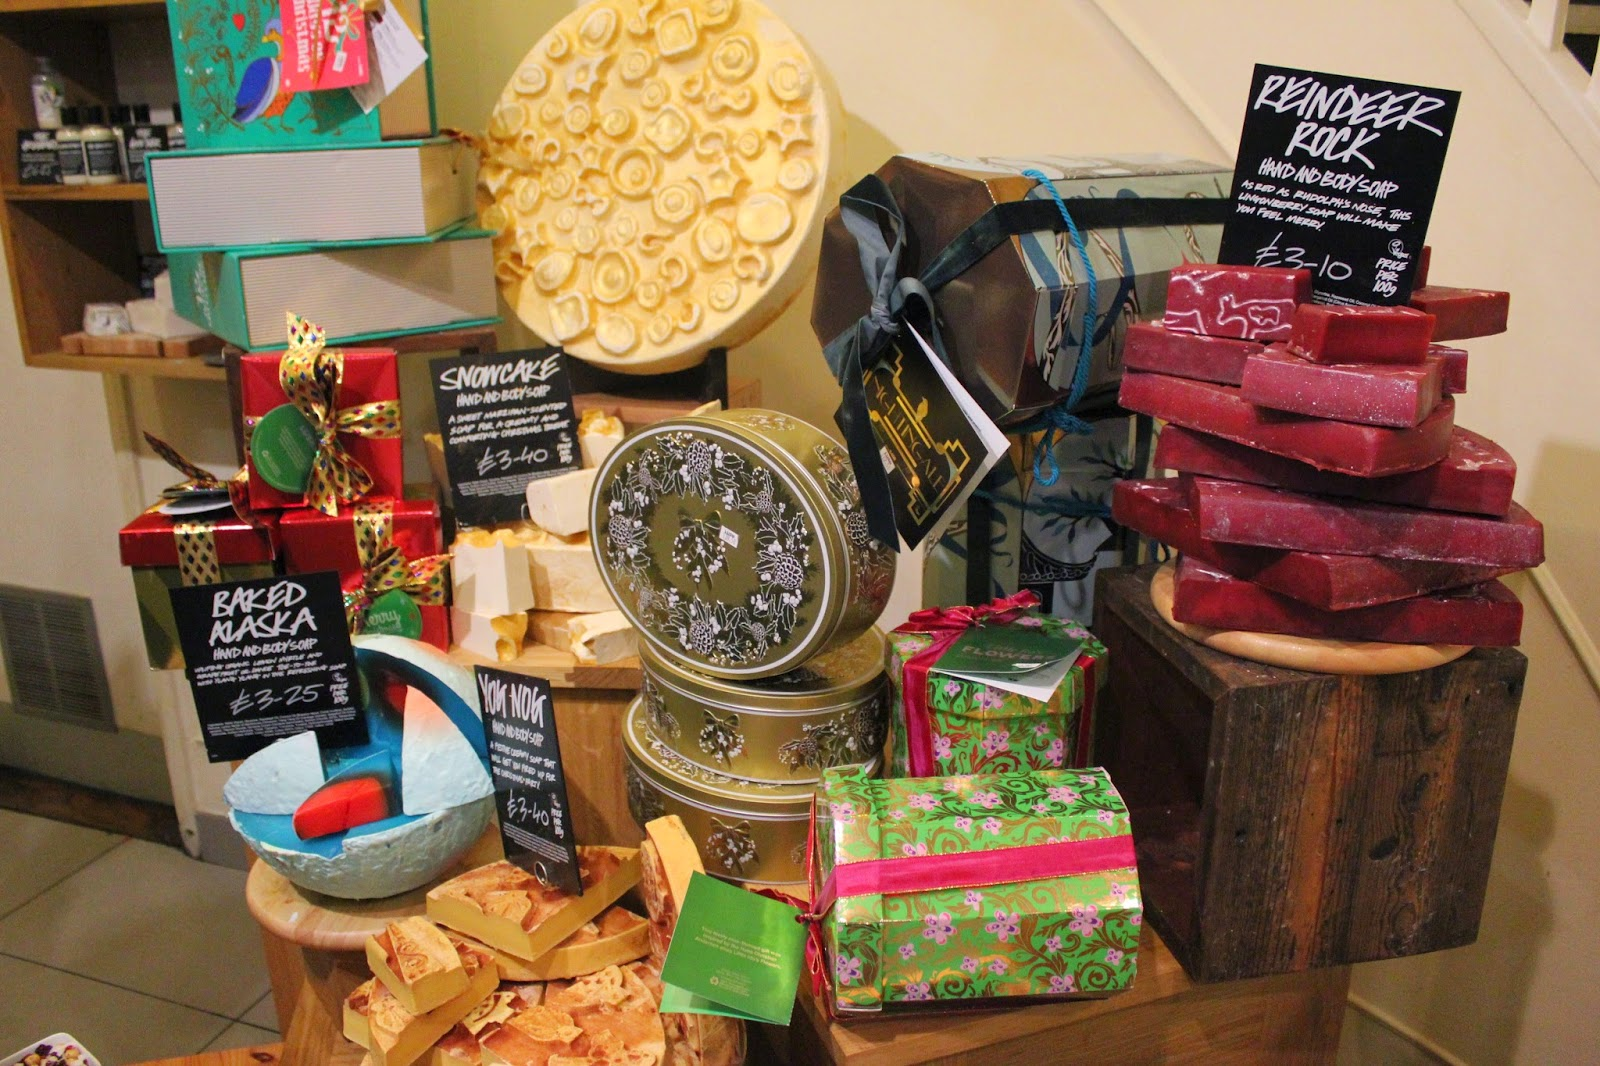 lush-beauty-bath-christmas-present-ideas-event